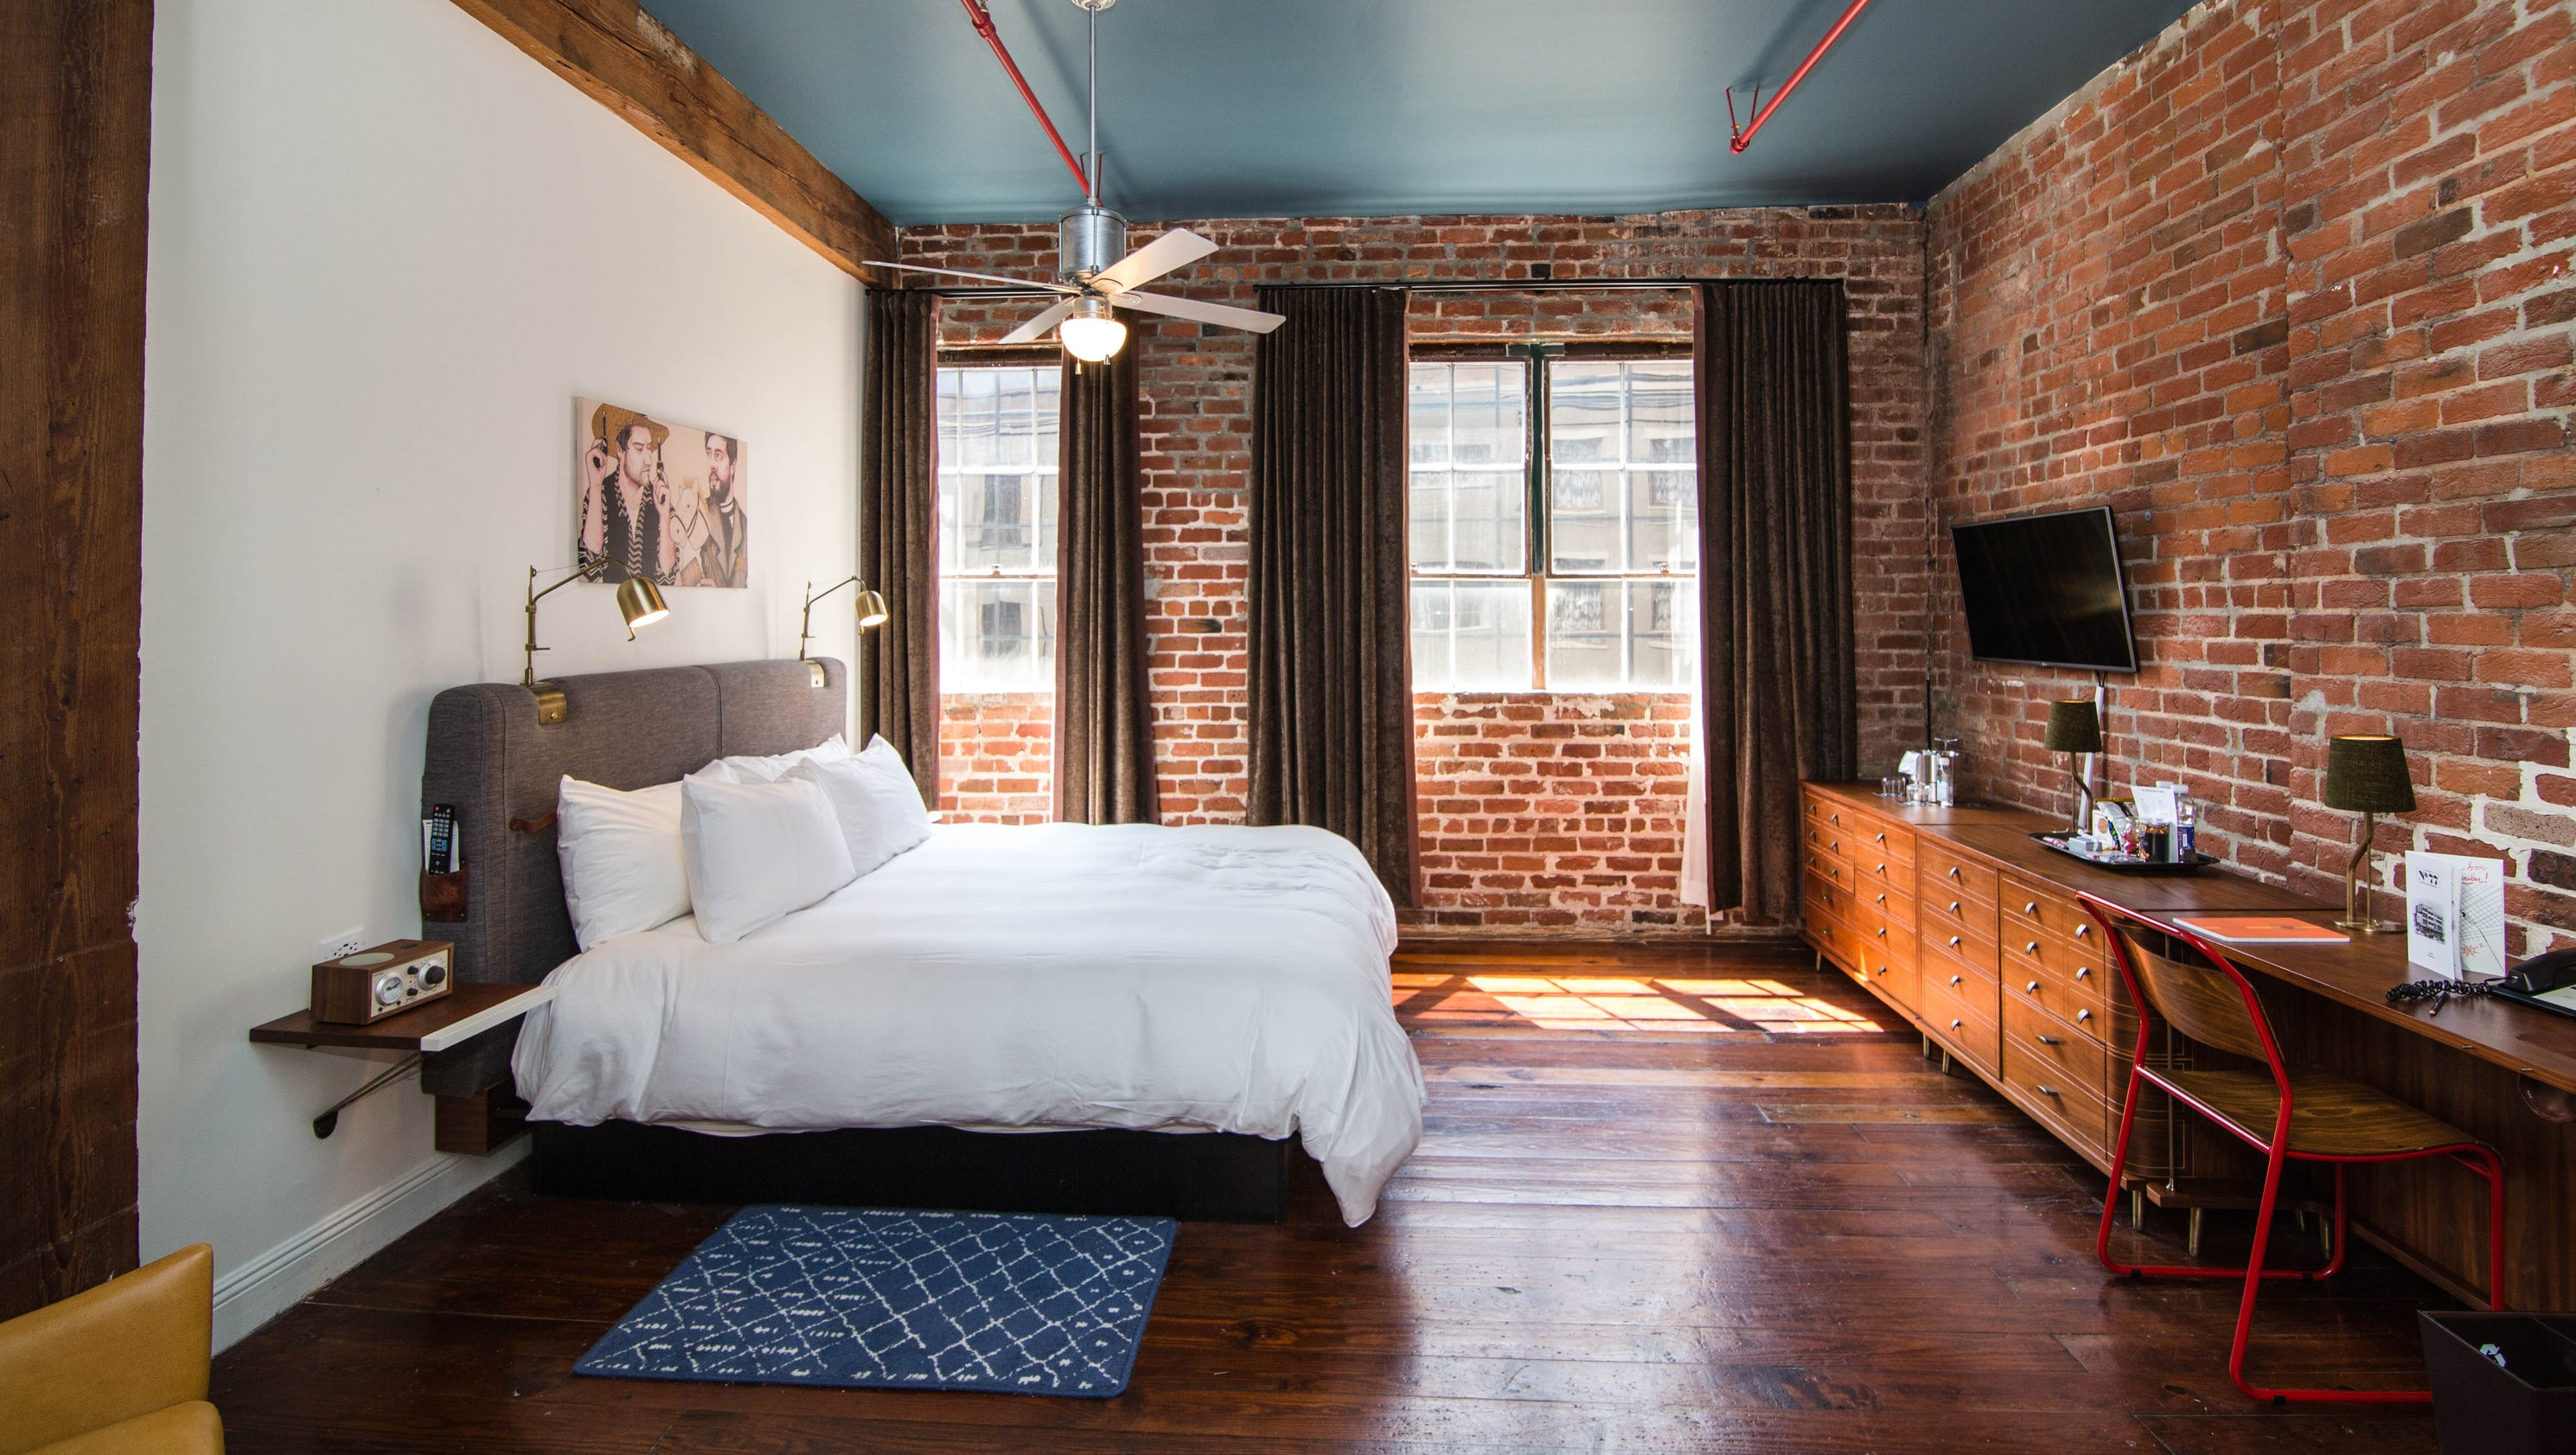 10 stylish hotel rooms for under 100 a night for Stylish hotel